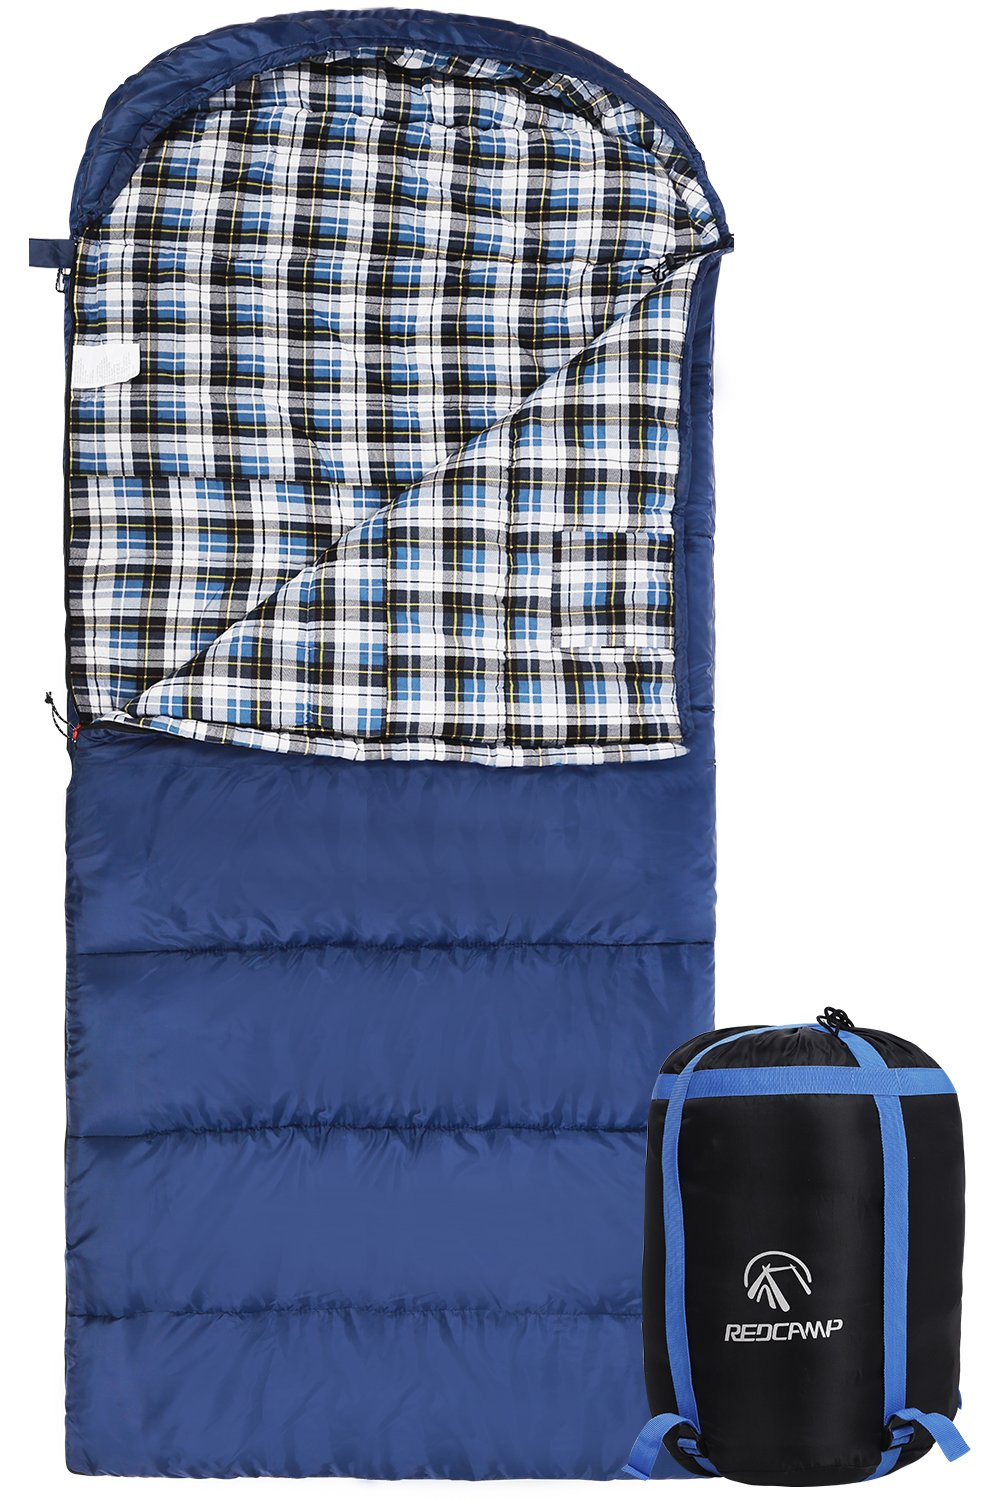 REDCAMP Cotton Flannel Sleeping Bag for Adults, XL 32/41/50F Comfortable, Envelope with Compression Sack Blue 3lbs (91''x35'') by REDCAMP